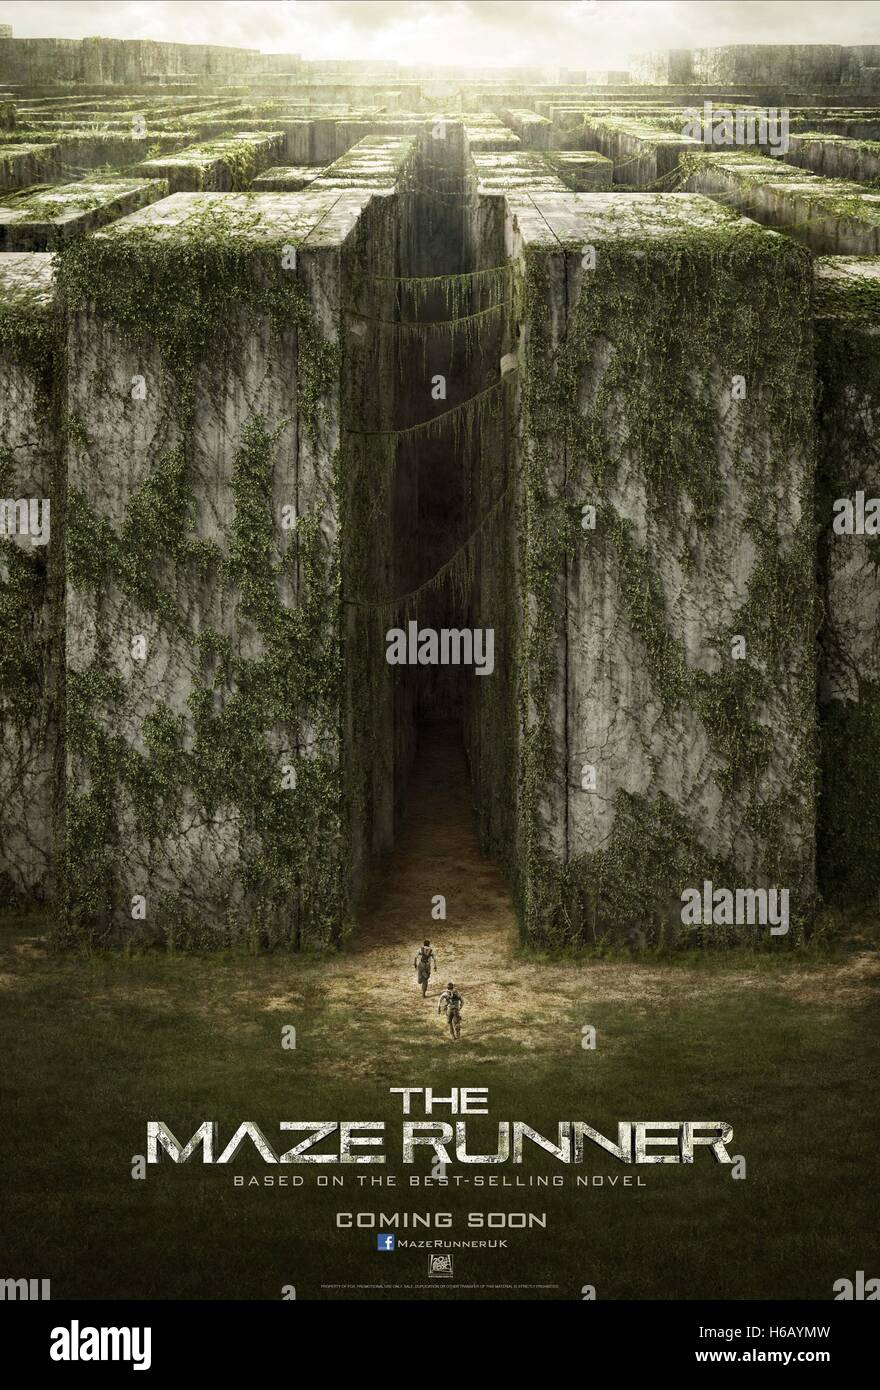 THE MAZE WALL POSTER THE MAZE RUNNER (2014) - Stock Image